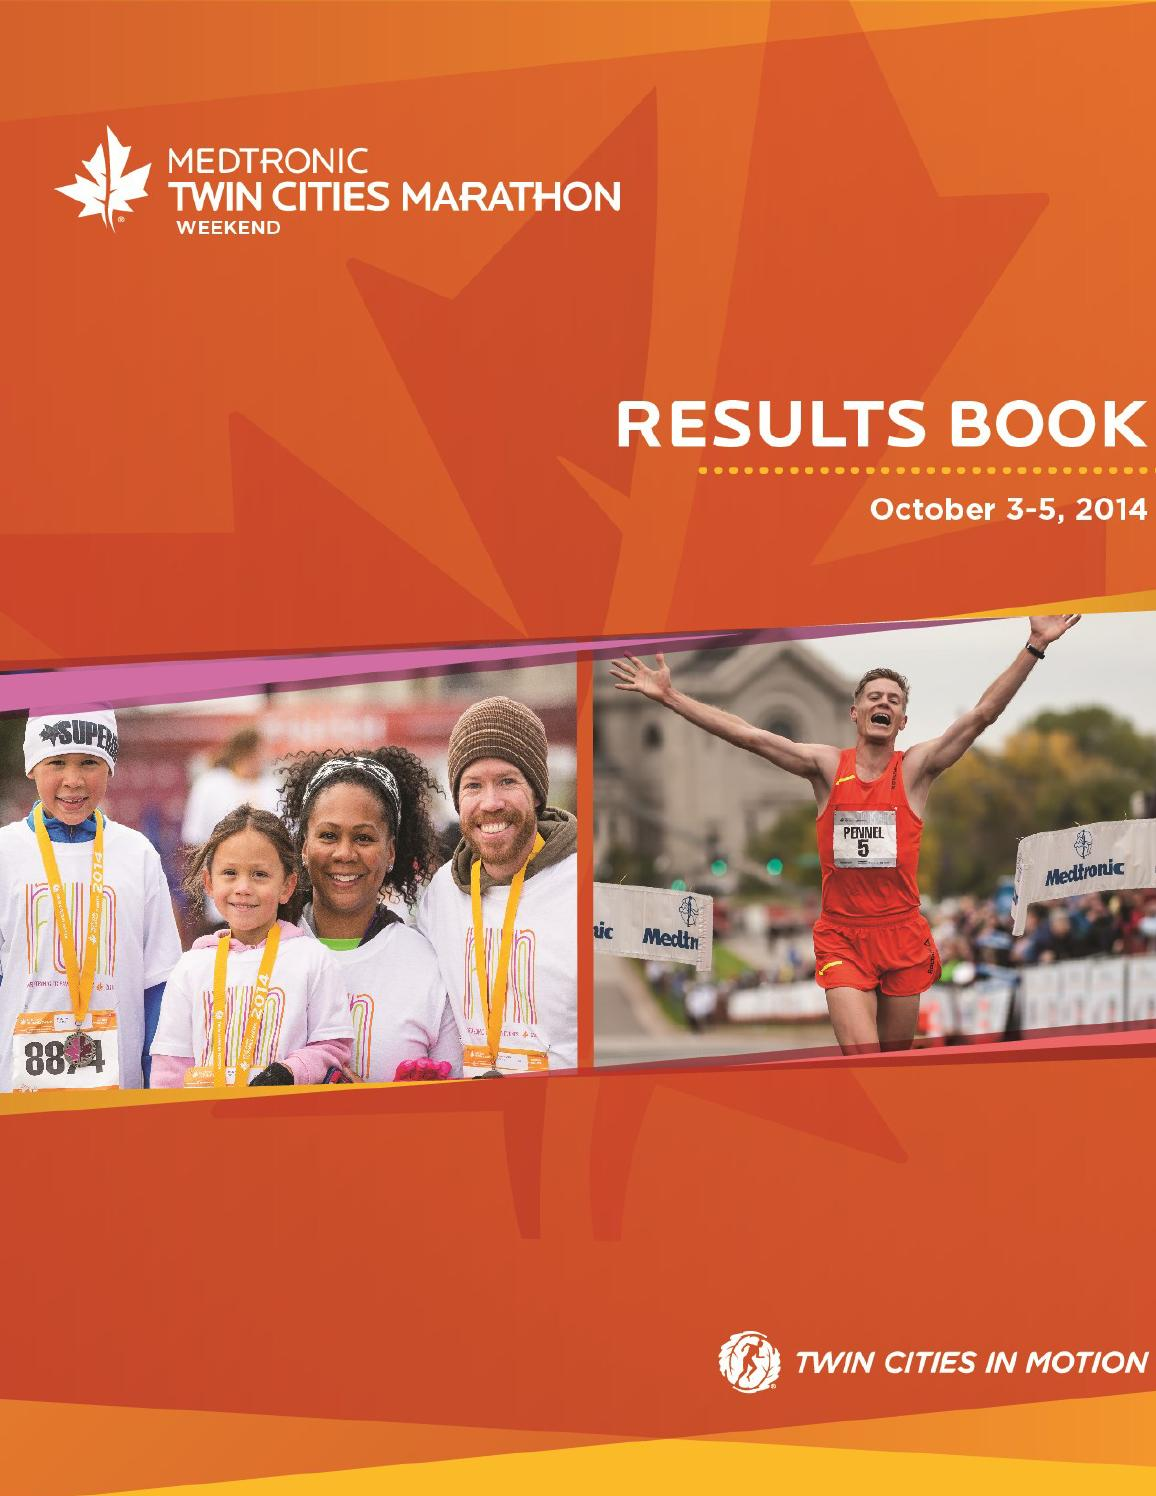 2014 Medtronic Twin Cities Marathon Results Book by Twin Cities In